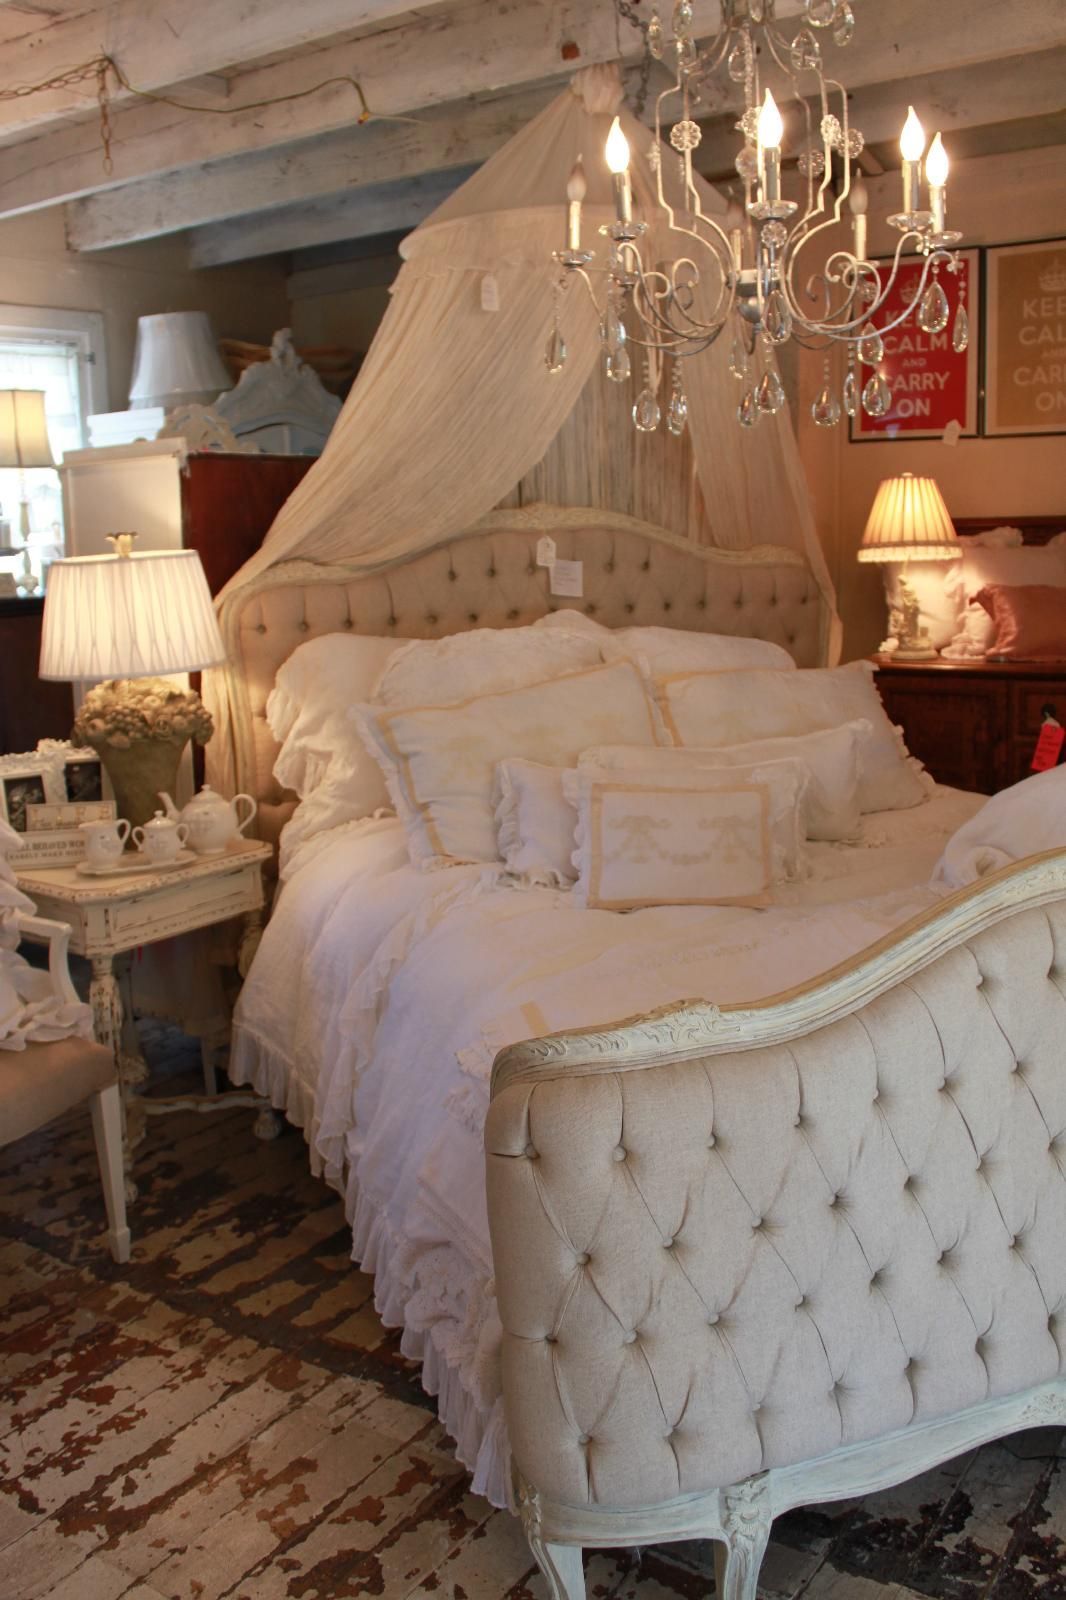 Romantic Room Lay Out: Romantic Bedroom I Can't Imagine A Man Would Care For